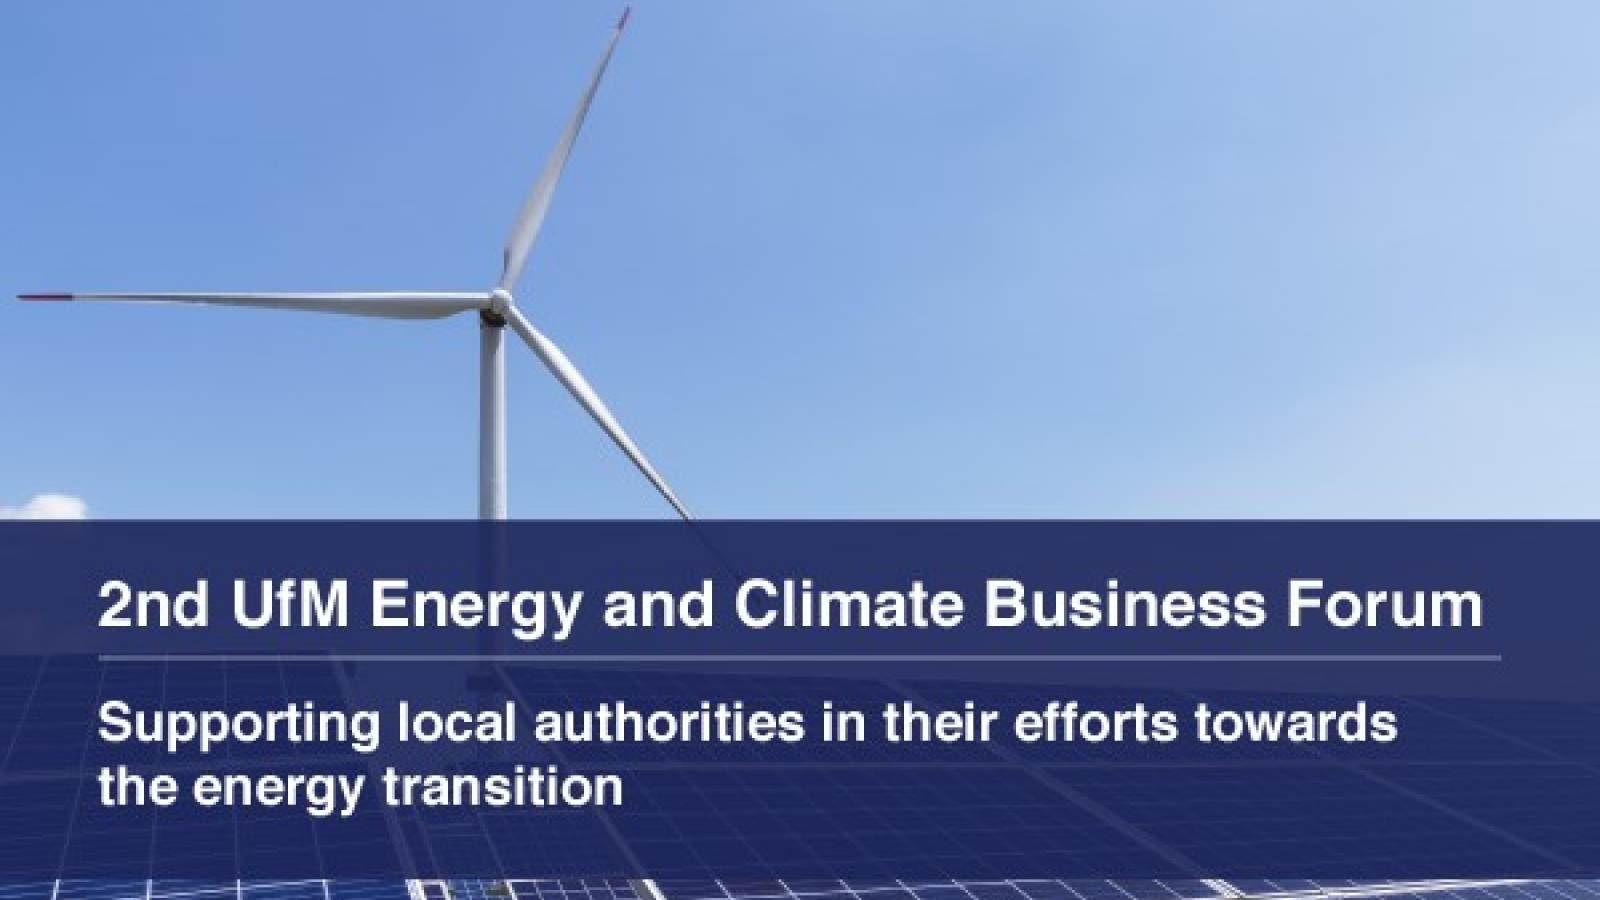 UfM Energy and Climate Business Forum to support local authorities towards energy transition